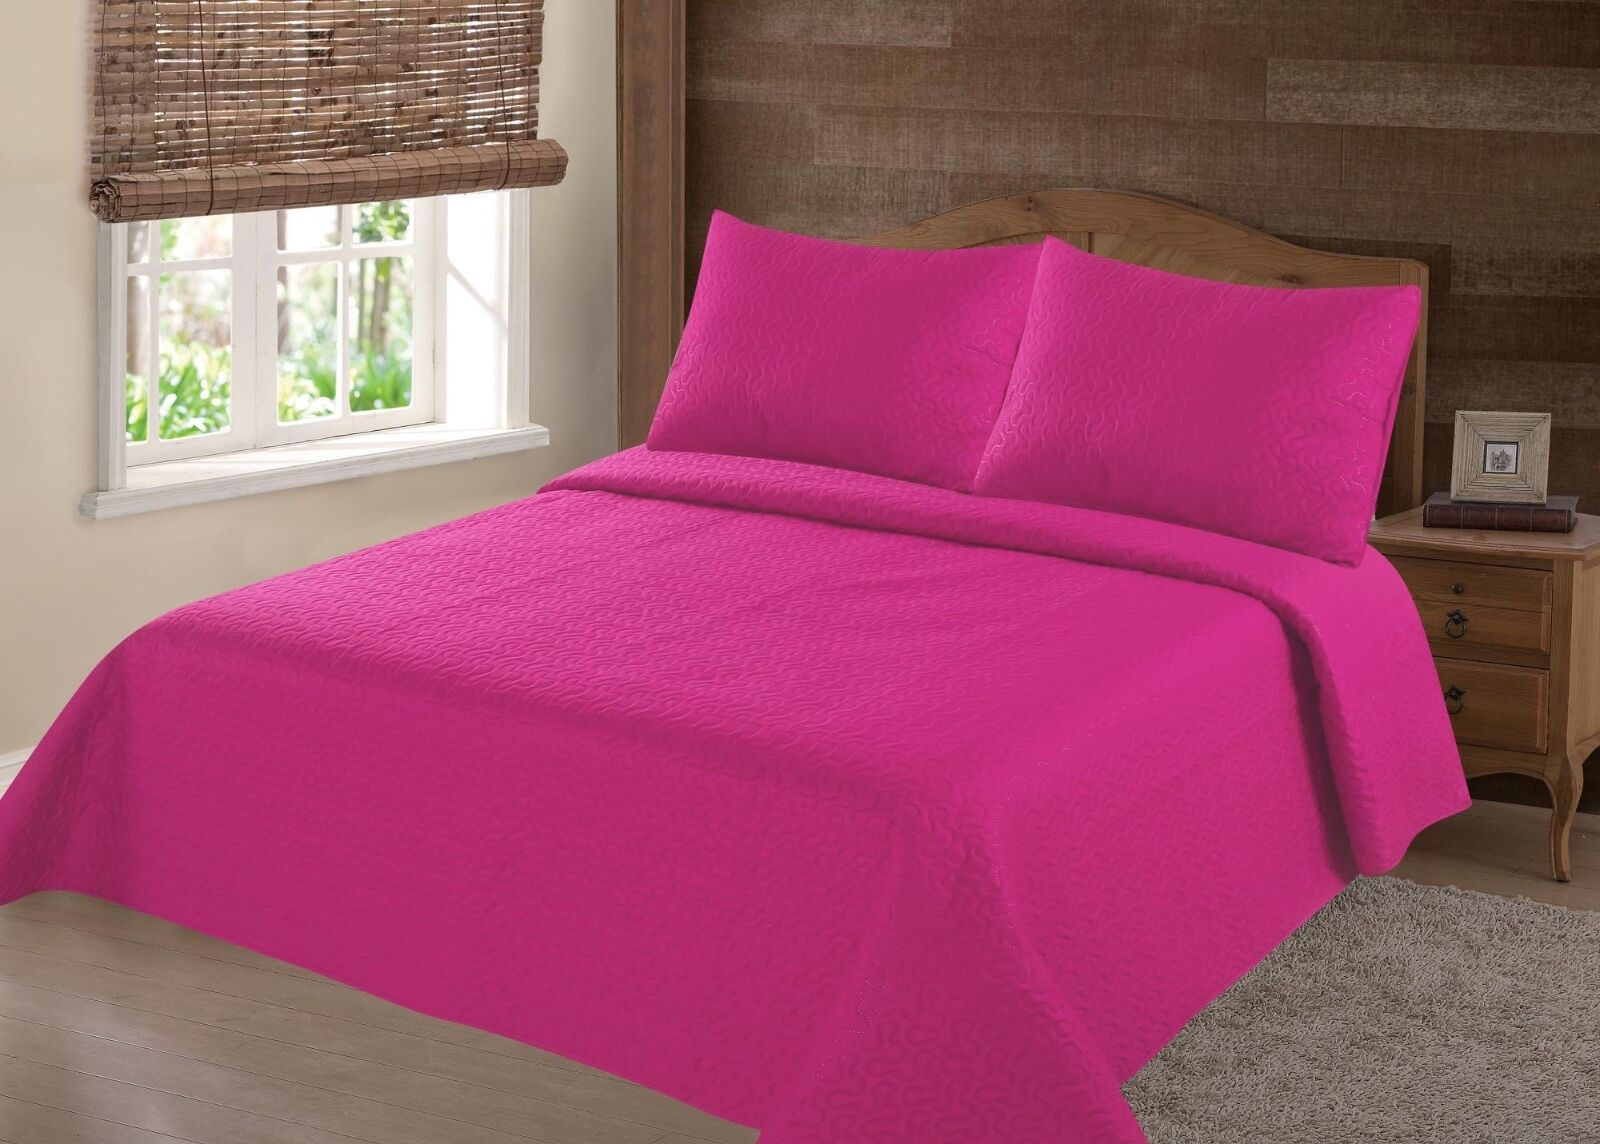 2//3PC HOT PINK NENA BEDSPREAD QUILT SET COVERLET STIPPLING STITCHE IN 4 SIZES